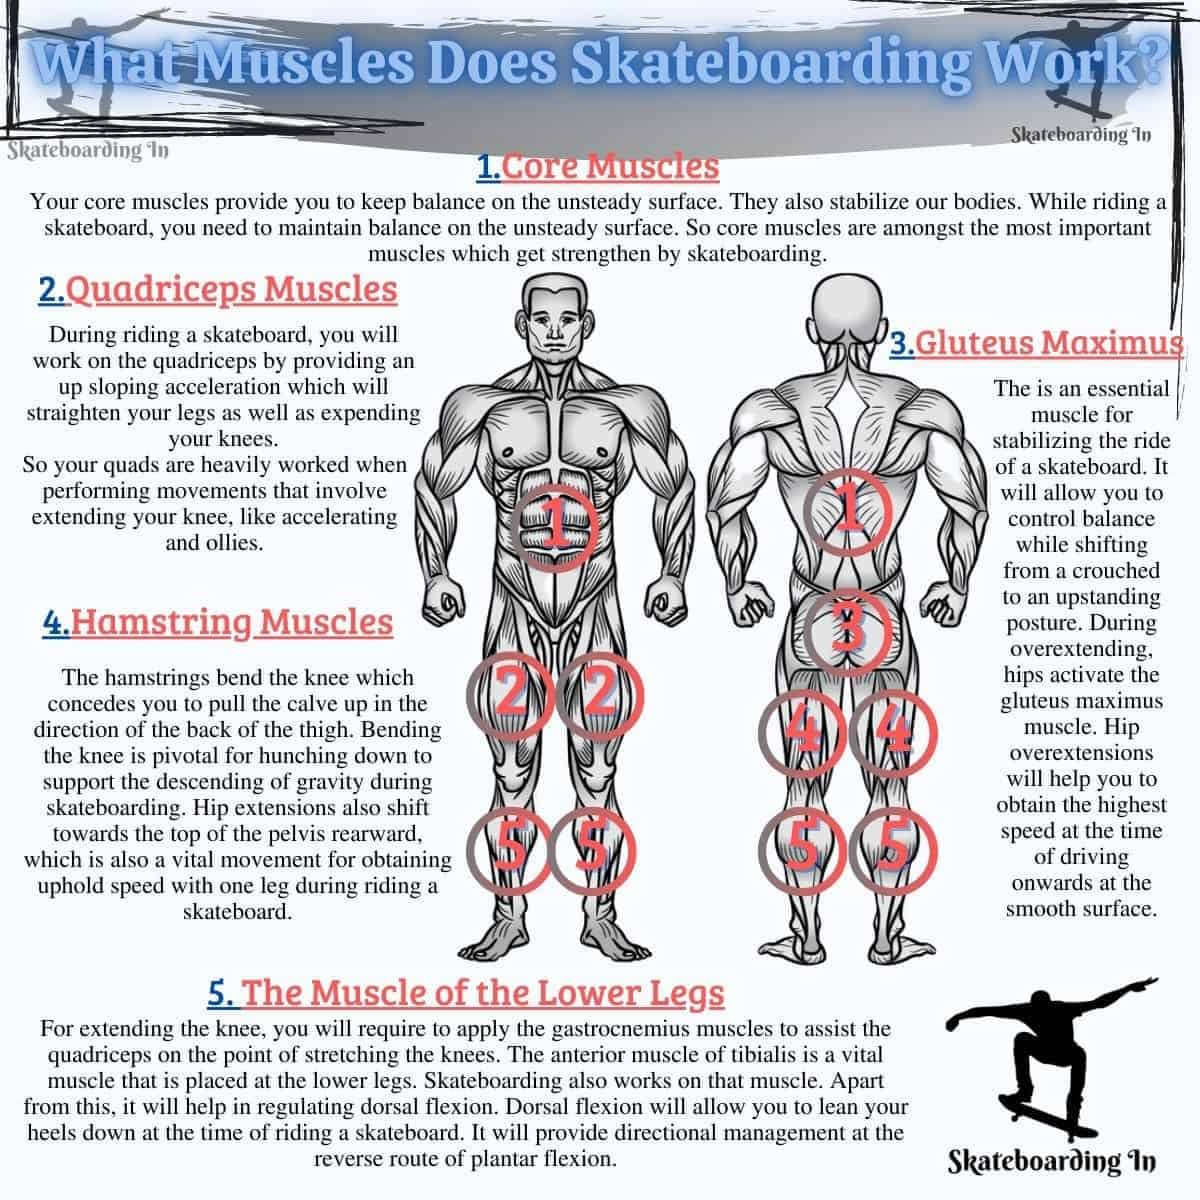 What Muscles Does Skateboarding Work